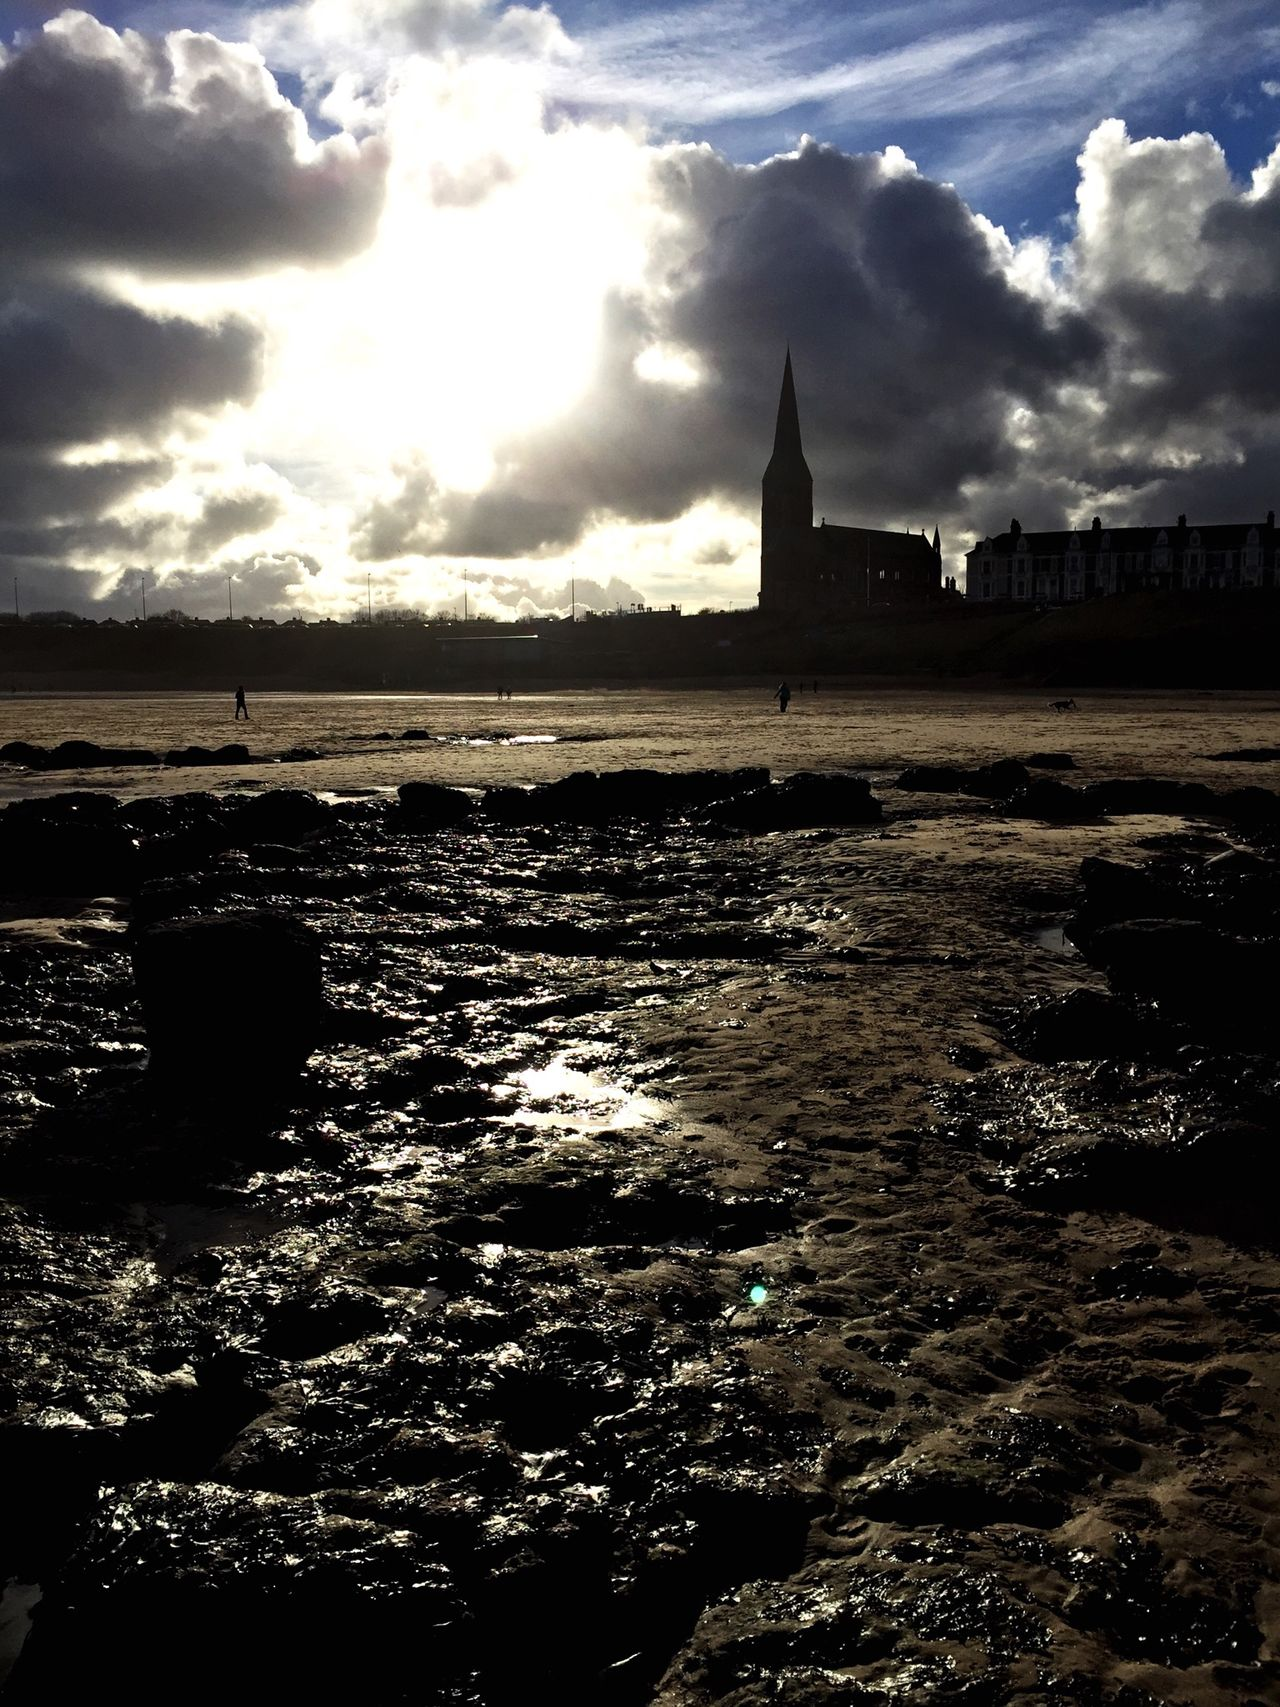 Cullercoats Church Spire Cloud Busting Beach Rocks Dog Walking Days Filtered Iphone 6 Tyne And Wear Headland Tidesout